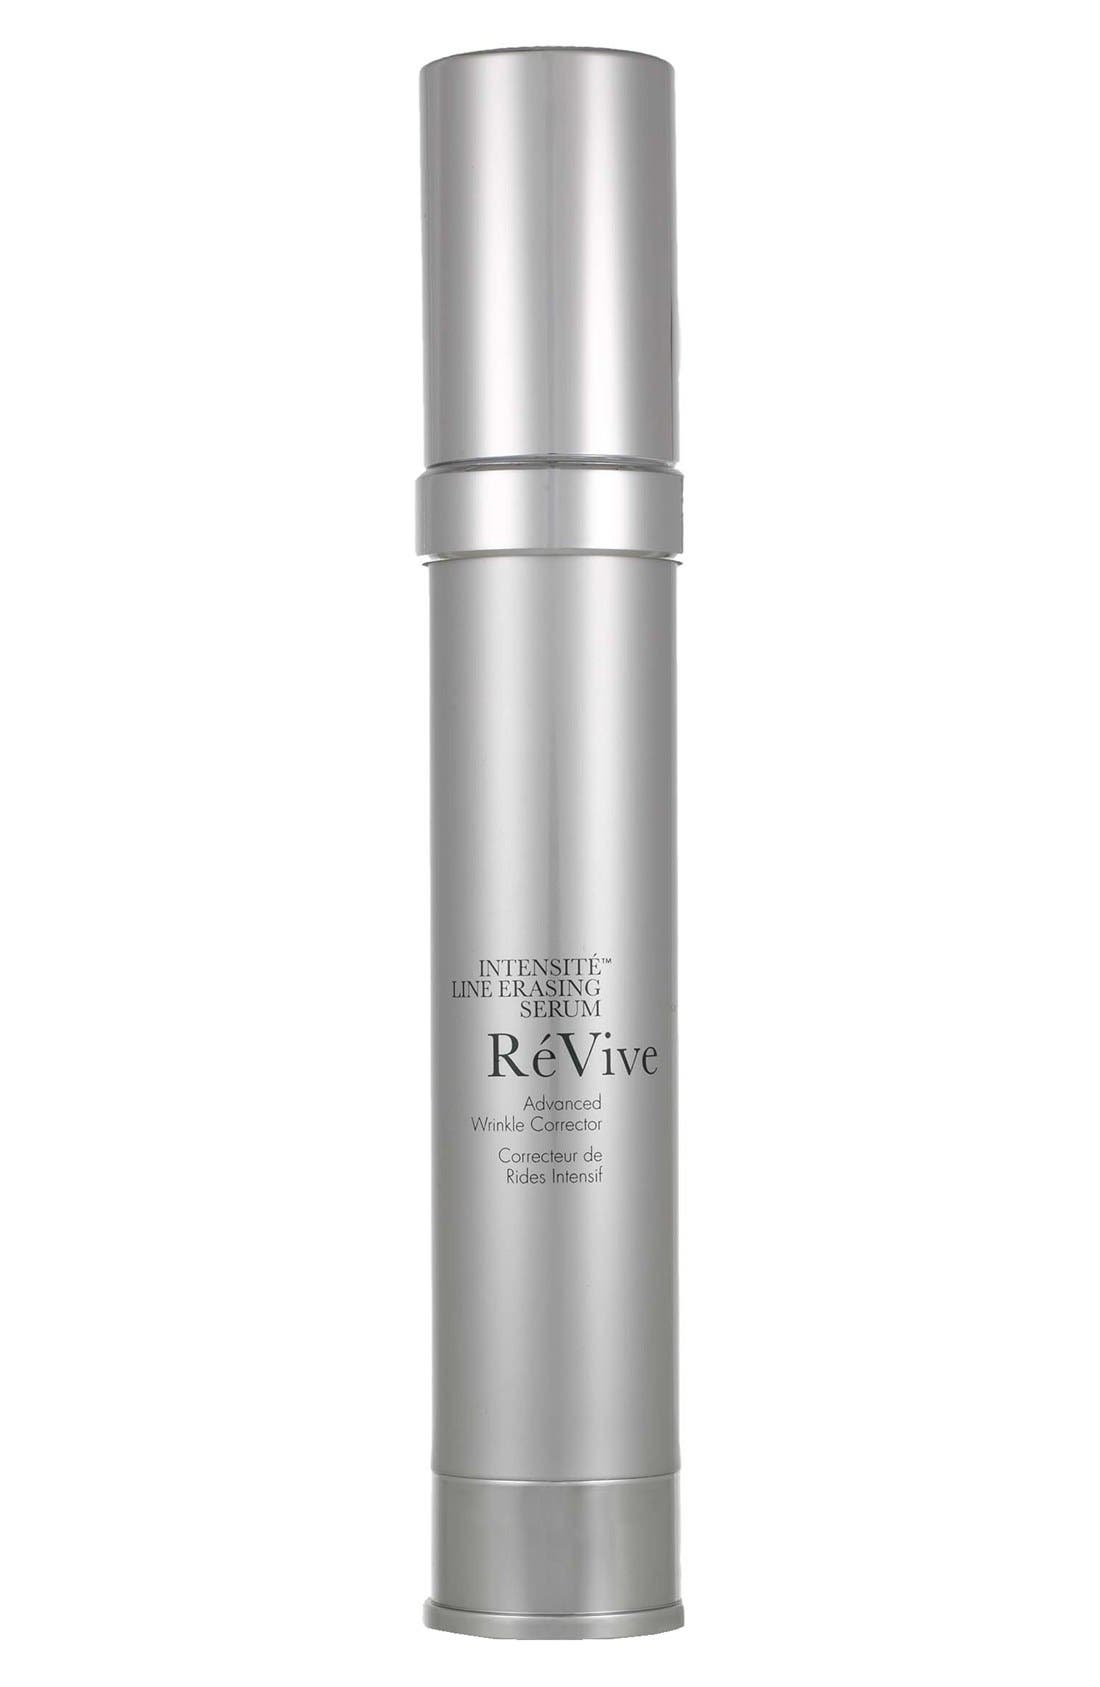 RéVive® Intensité Line Erasing Serum